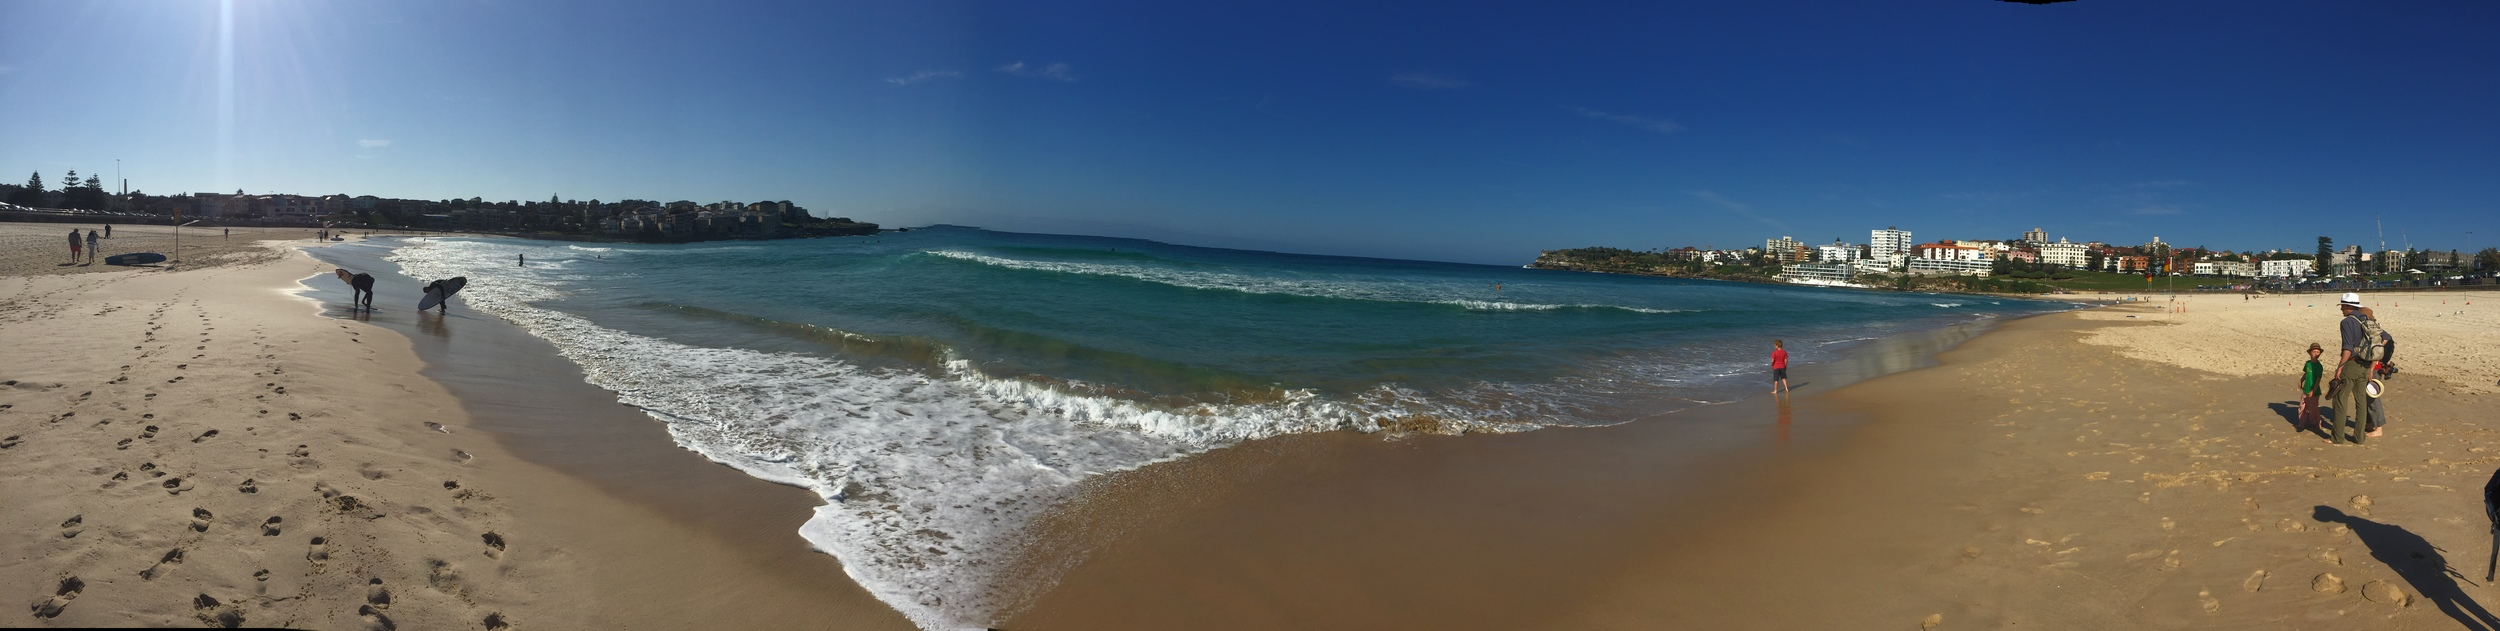 Manly Beach pano.